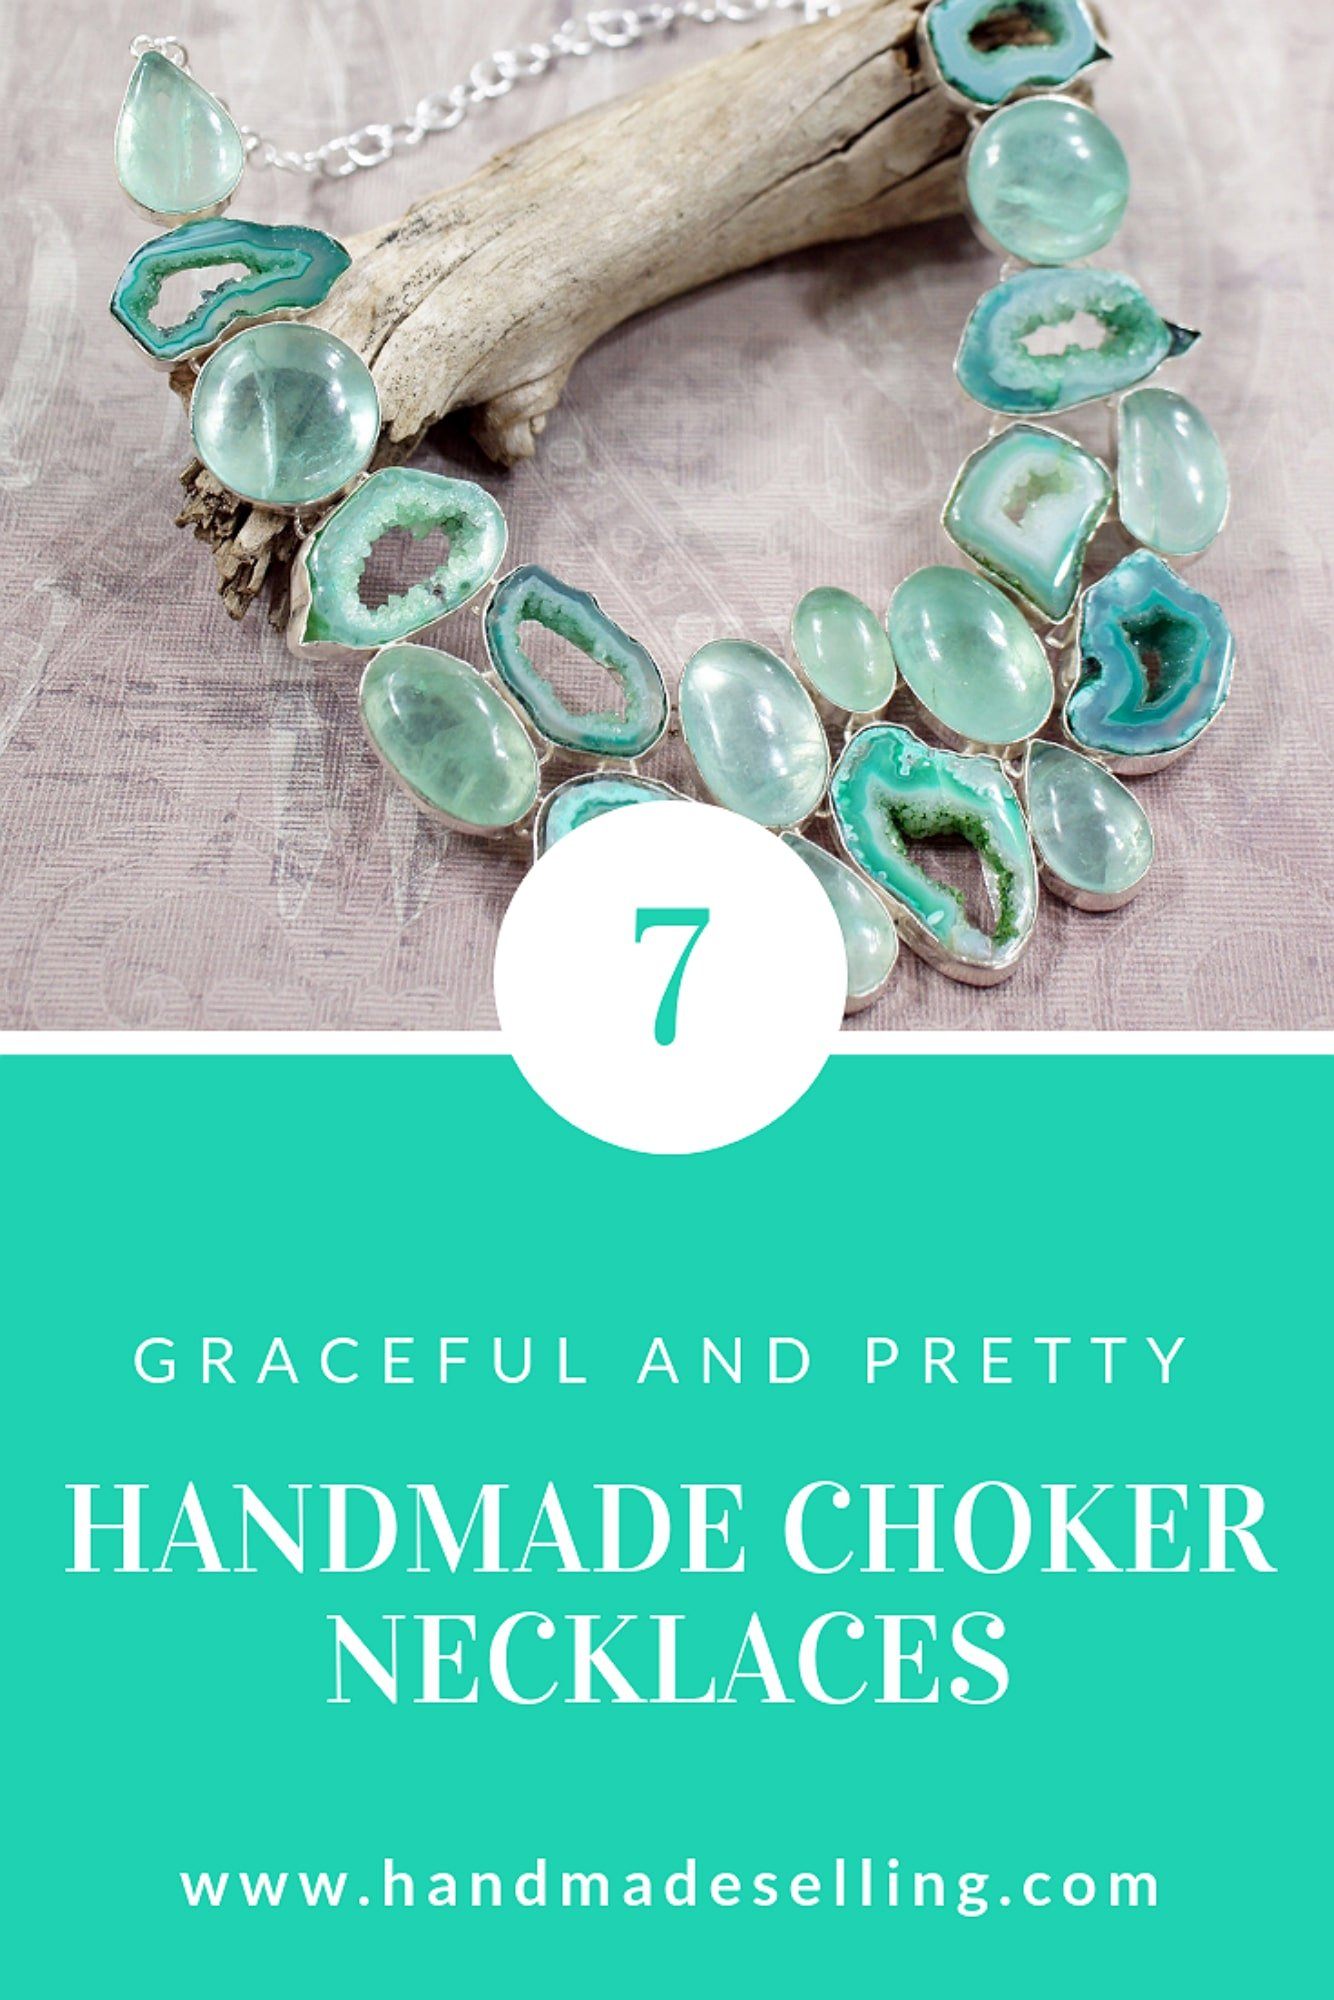 Know How to Look Beautiful With Handmade Choker Necklaces